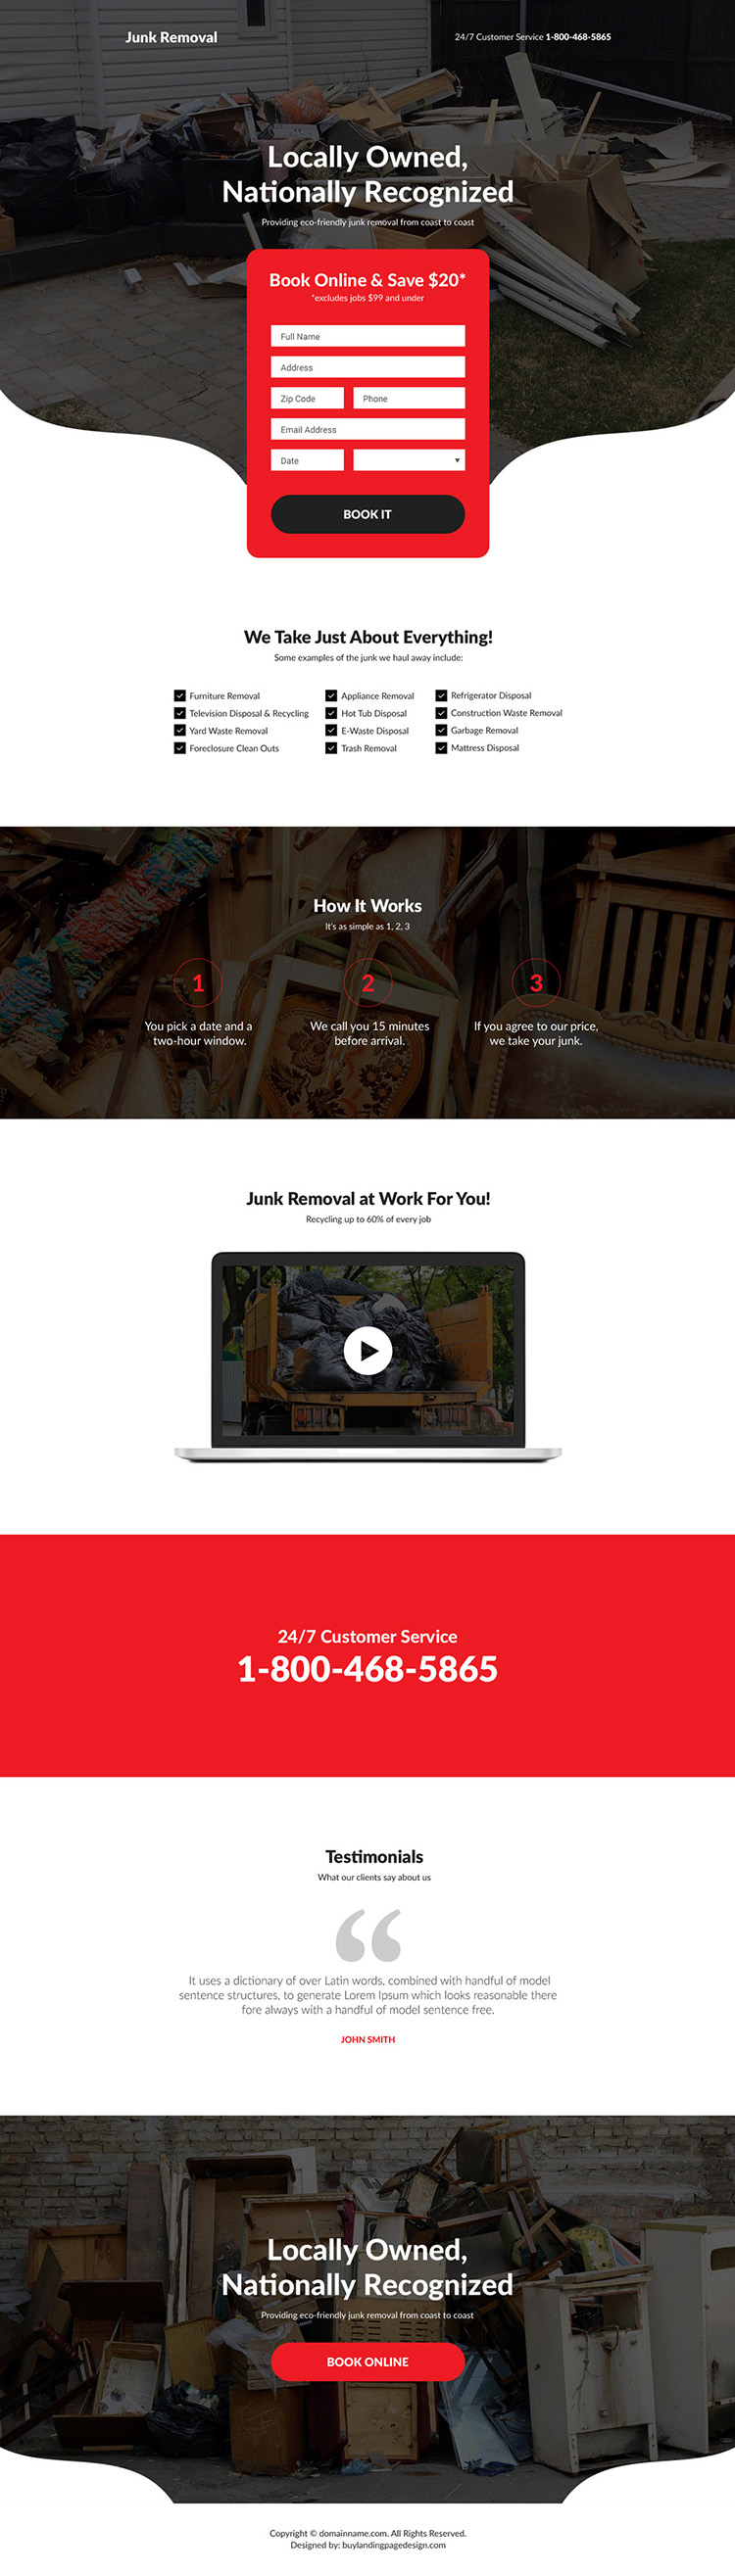 junk removal service responsive landing page design